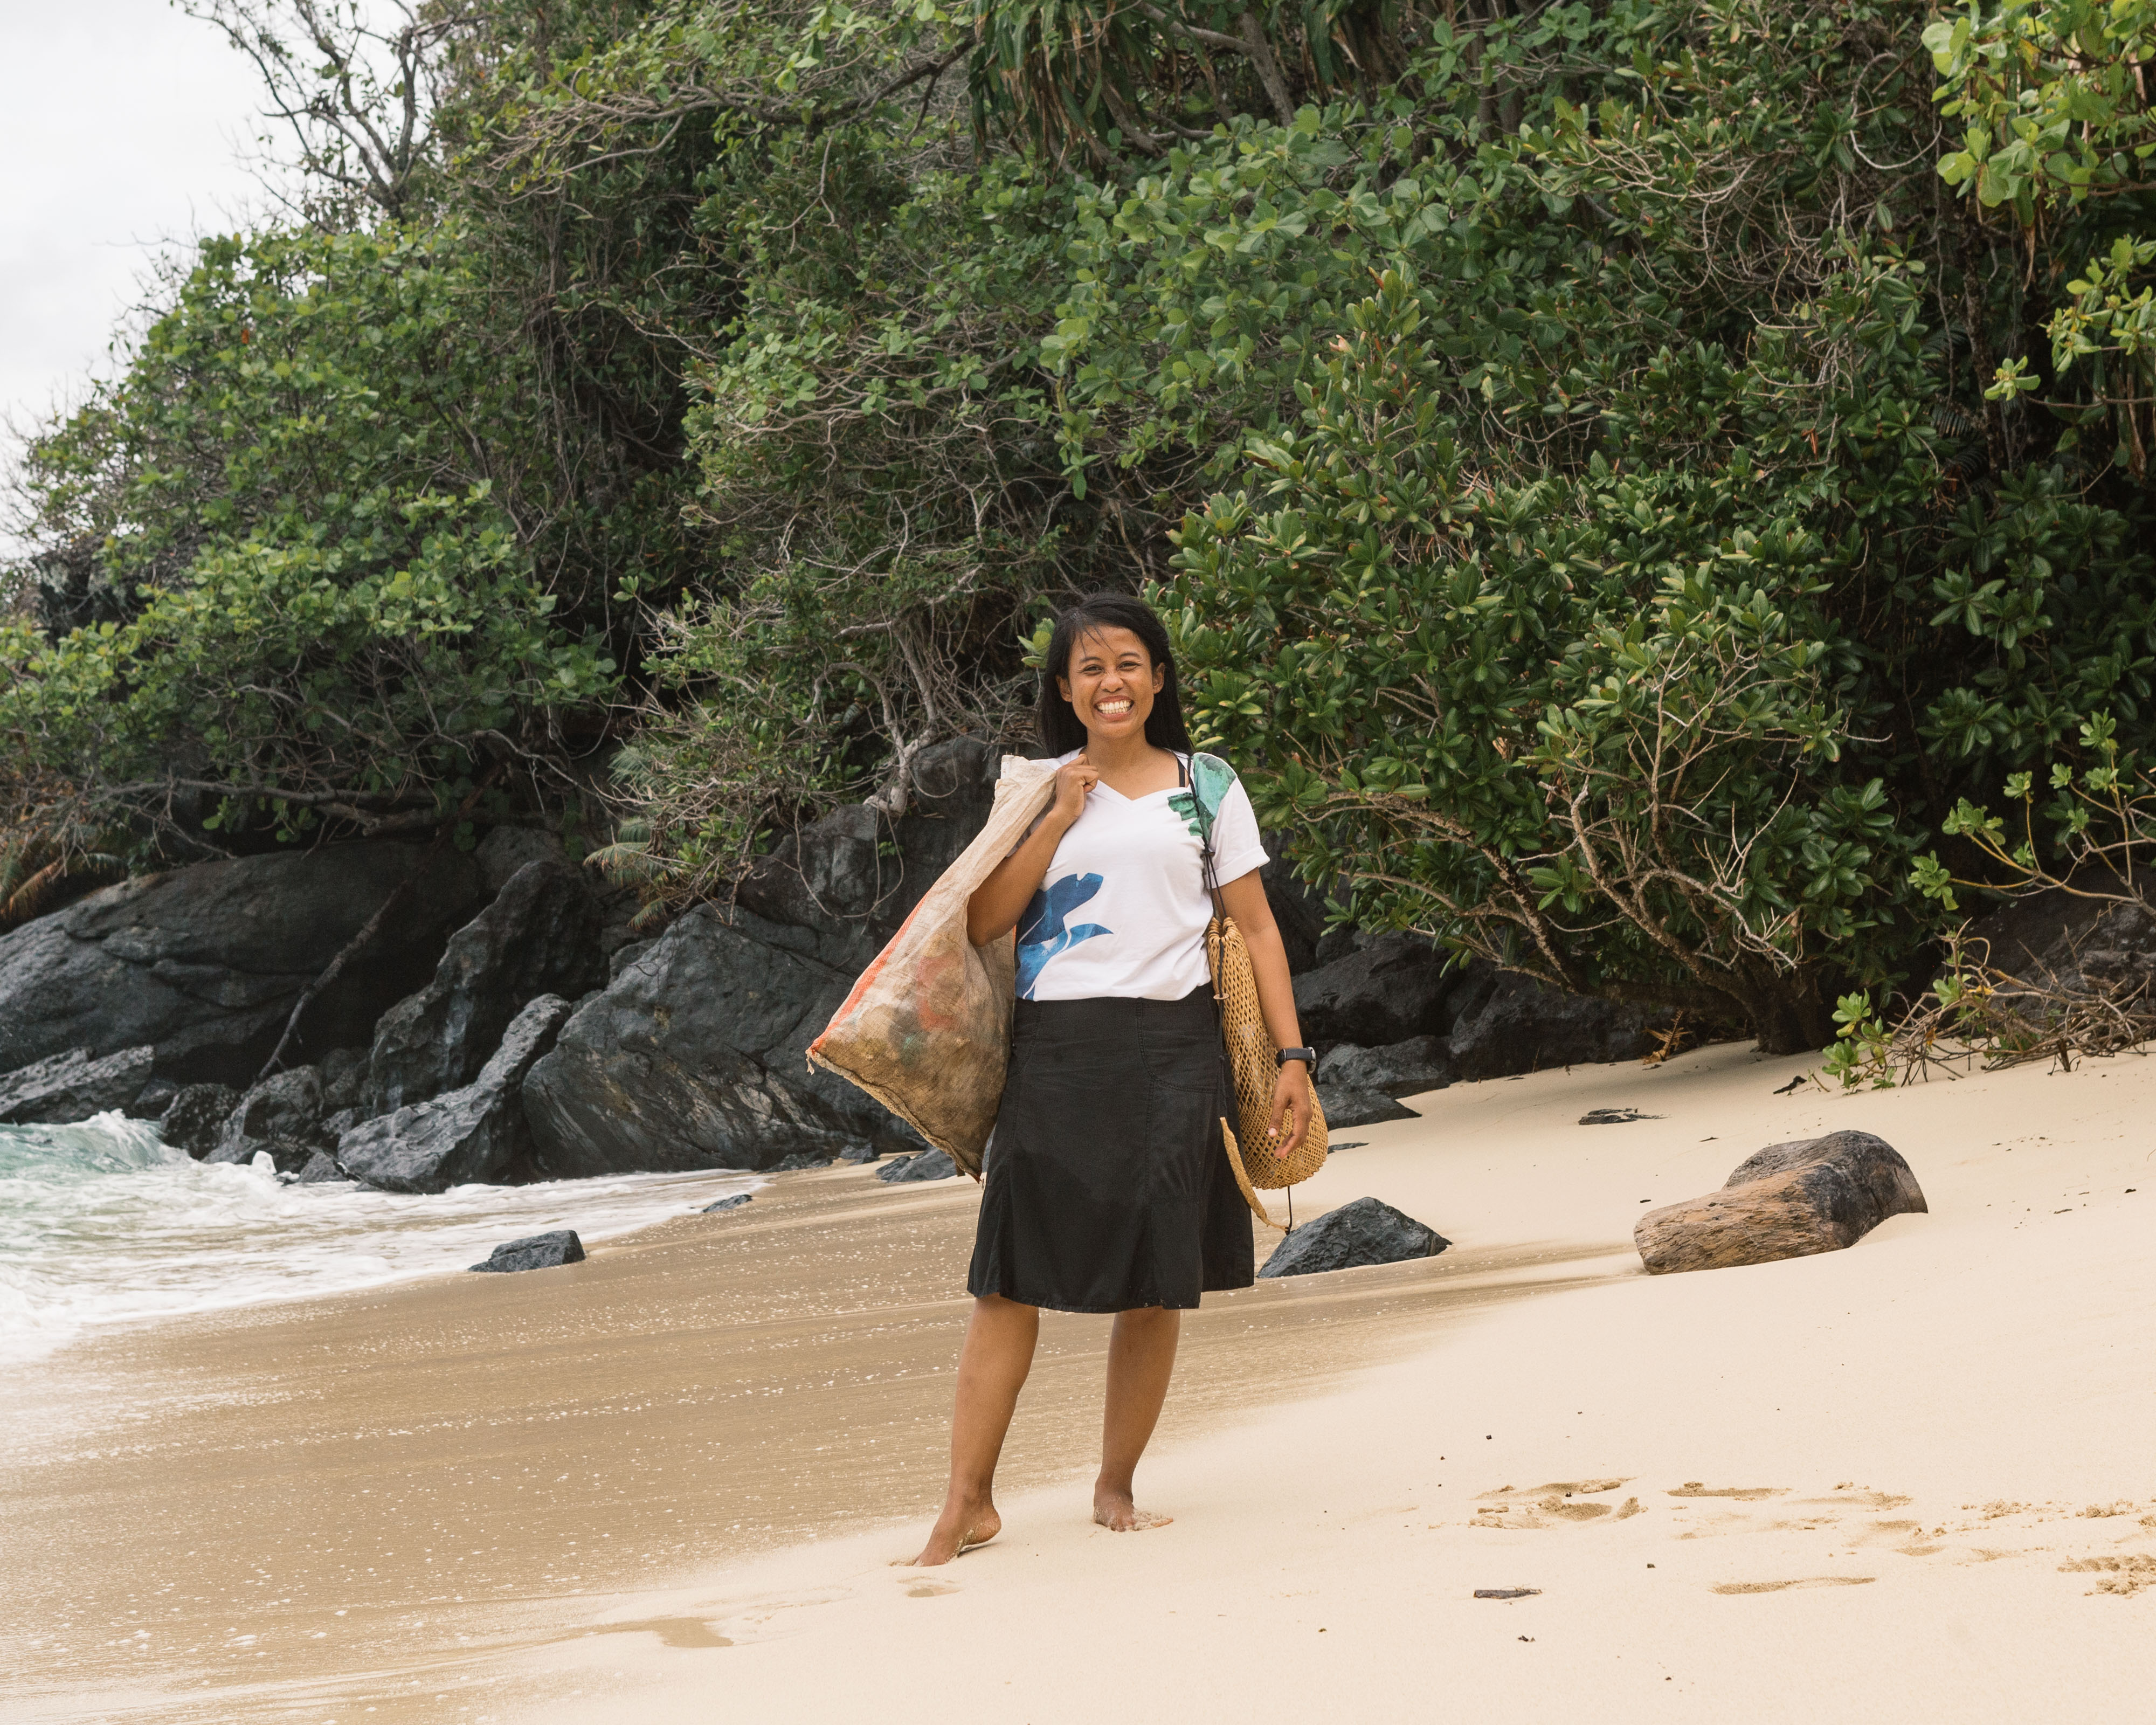 smiley_female_staff_collecting_trash_in_sack_beach_cleaning